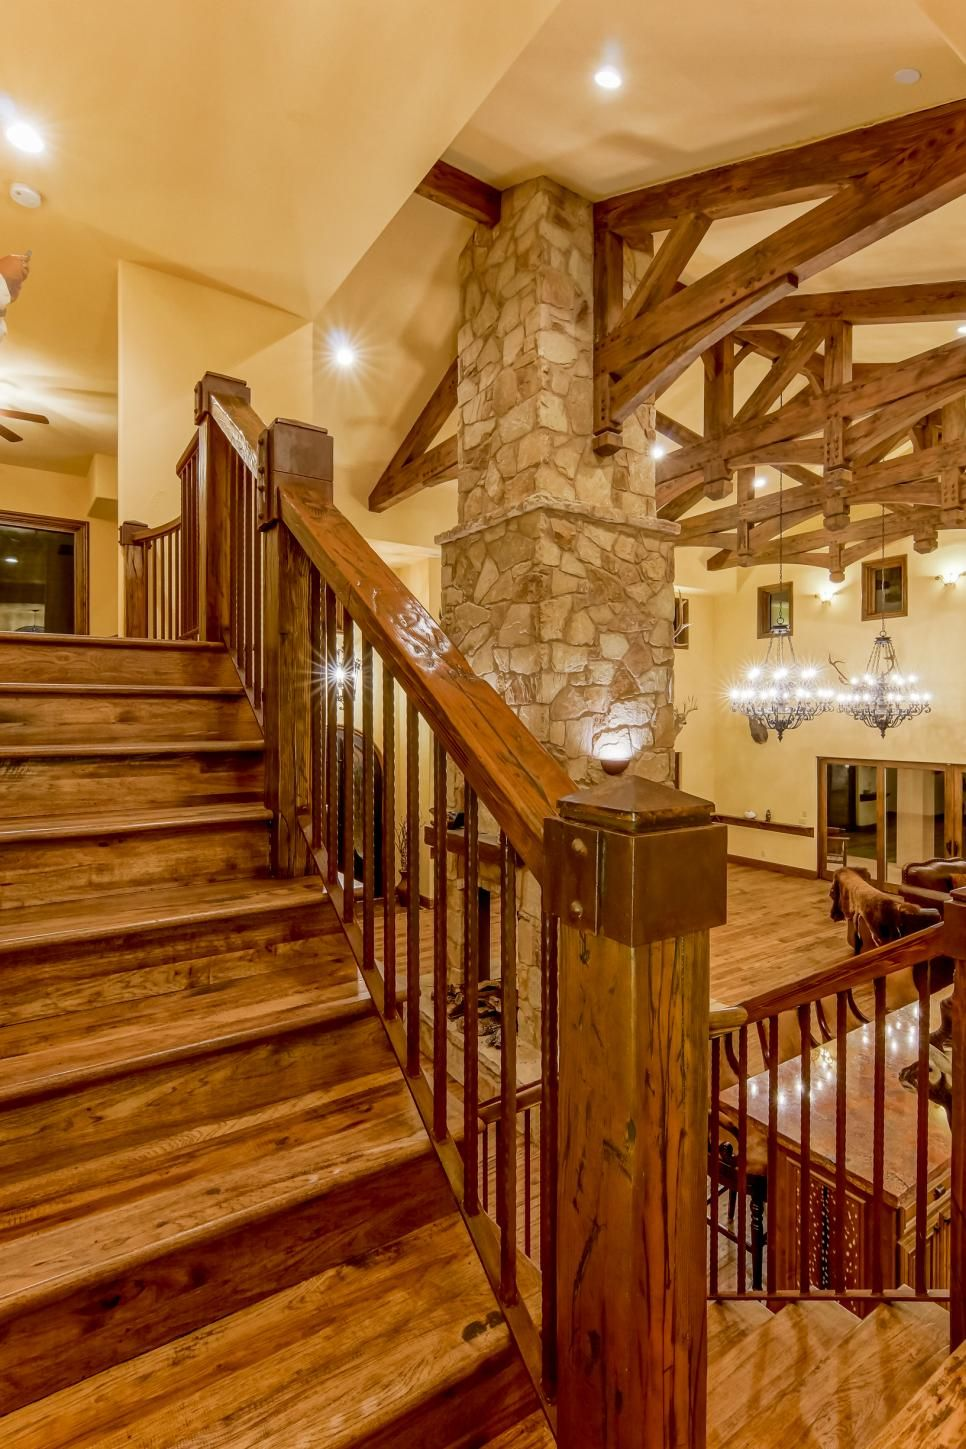 Rustic Mountian Stair Railings: Barron Custom Design Outfitted The Rustic Retreat With